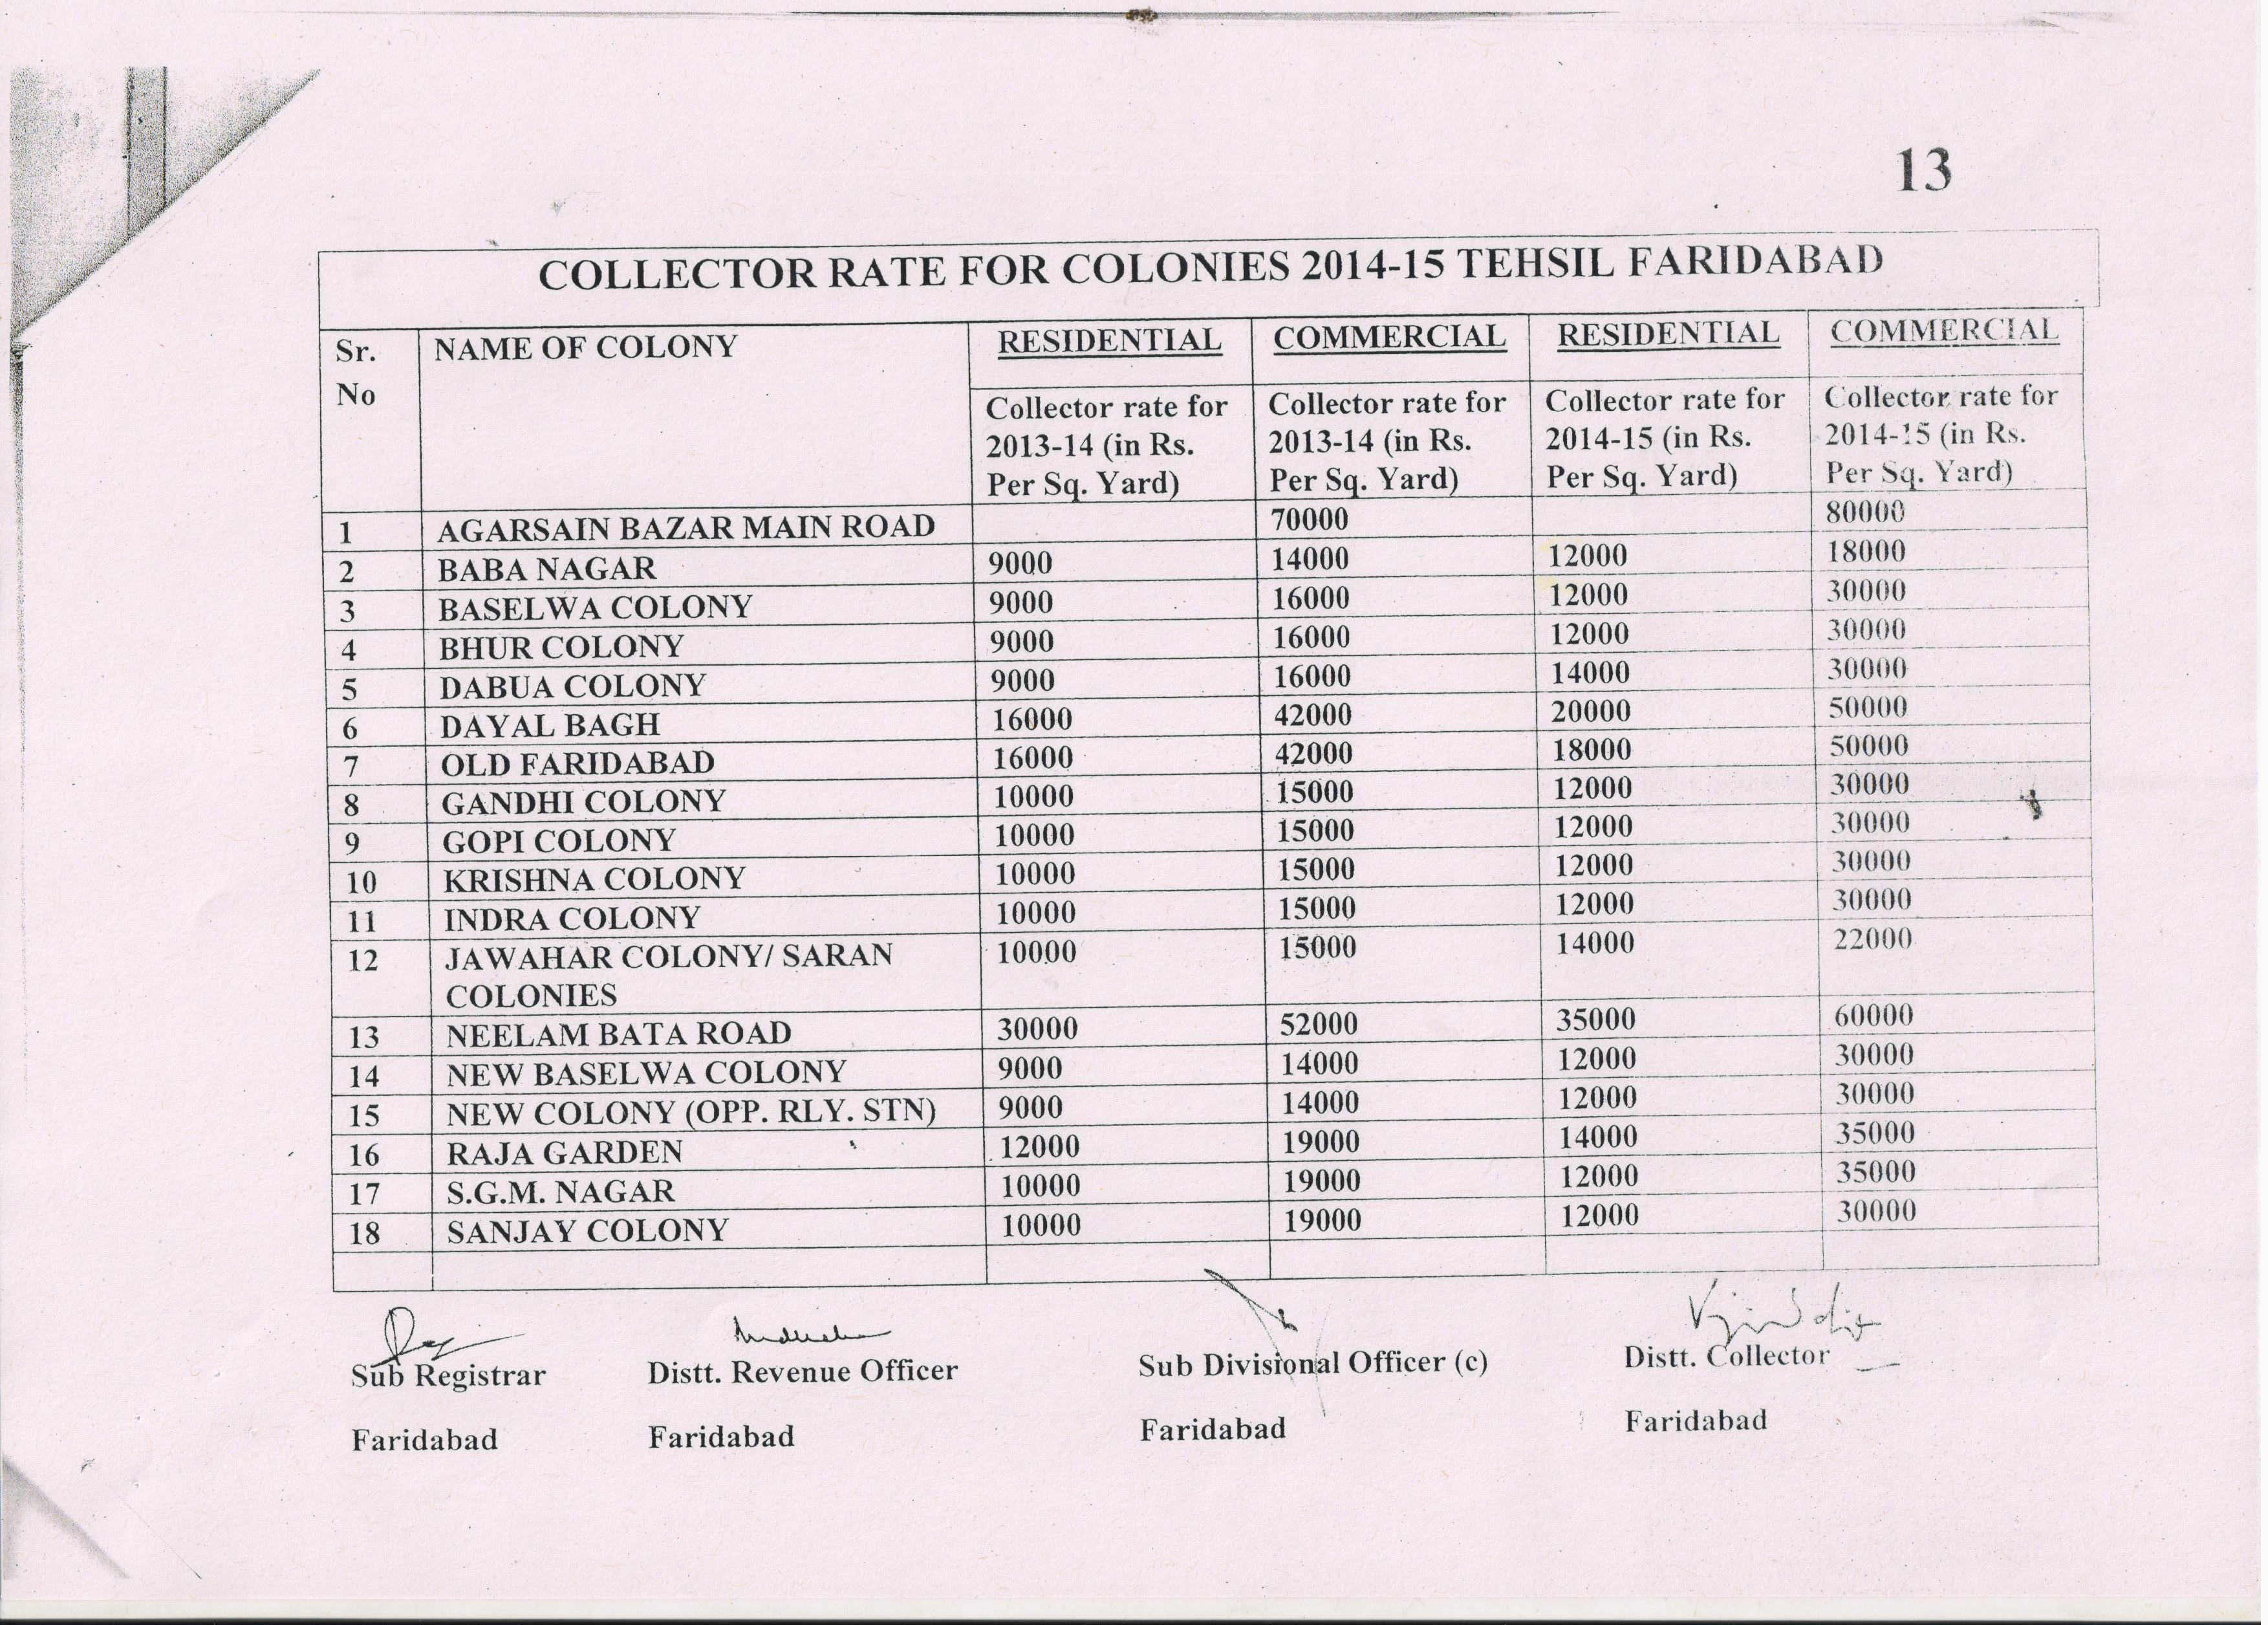 CIRCLE RATE OF FARIDABAD FOR THE YEAR 2014-15